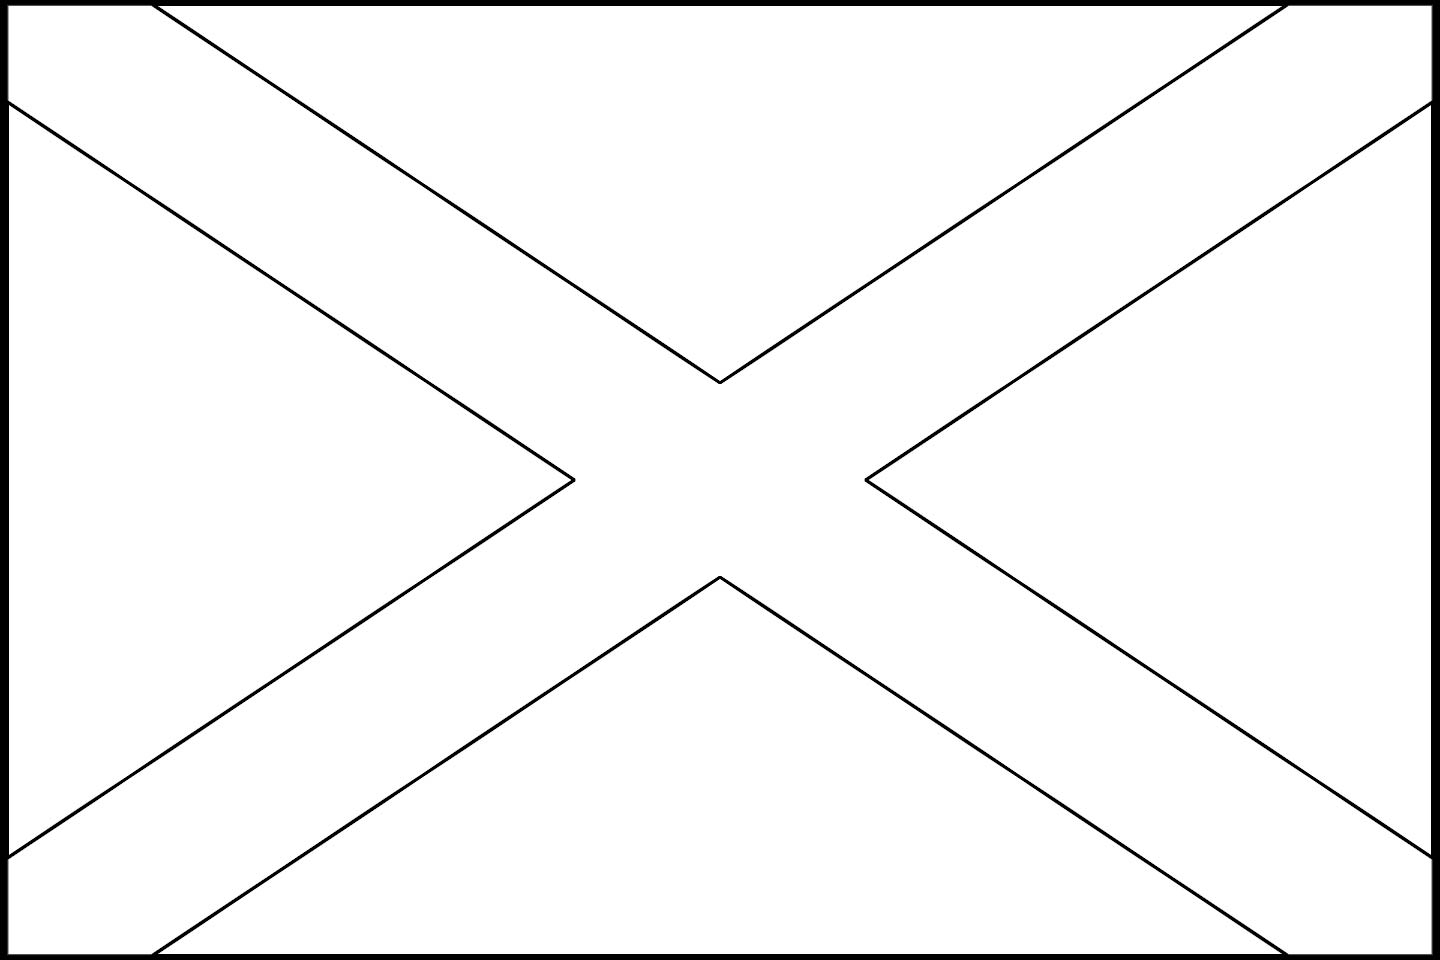 alabama state flag coloring page south georgia and the south sandwich islands flag coloring state coloring alabama page flag